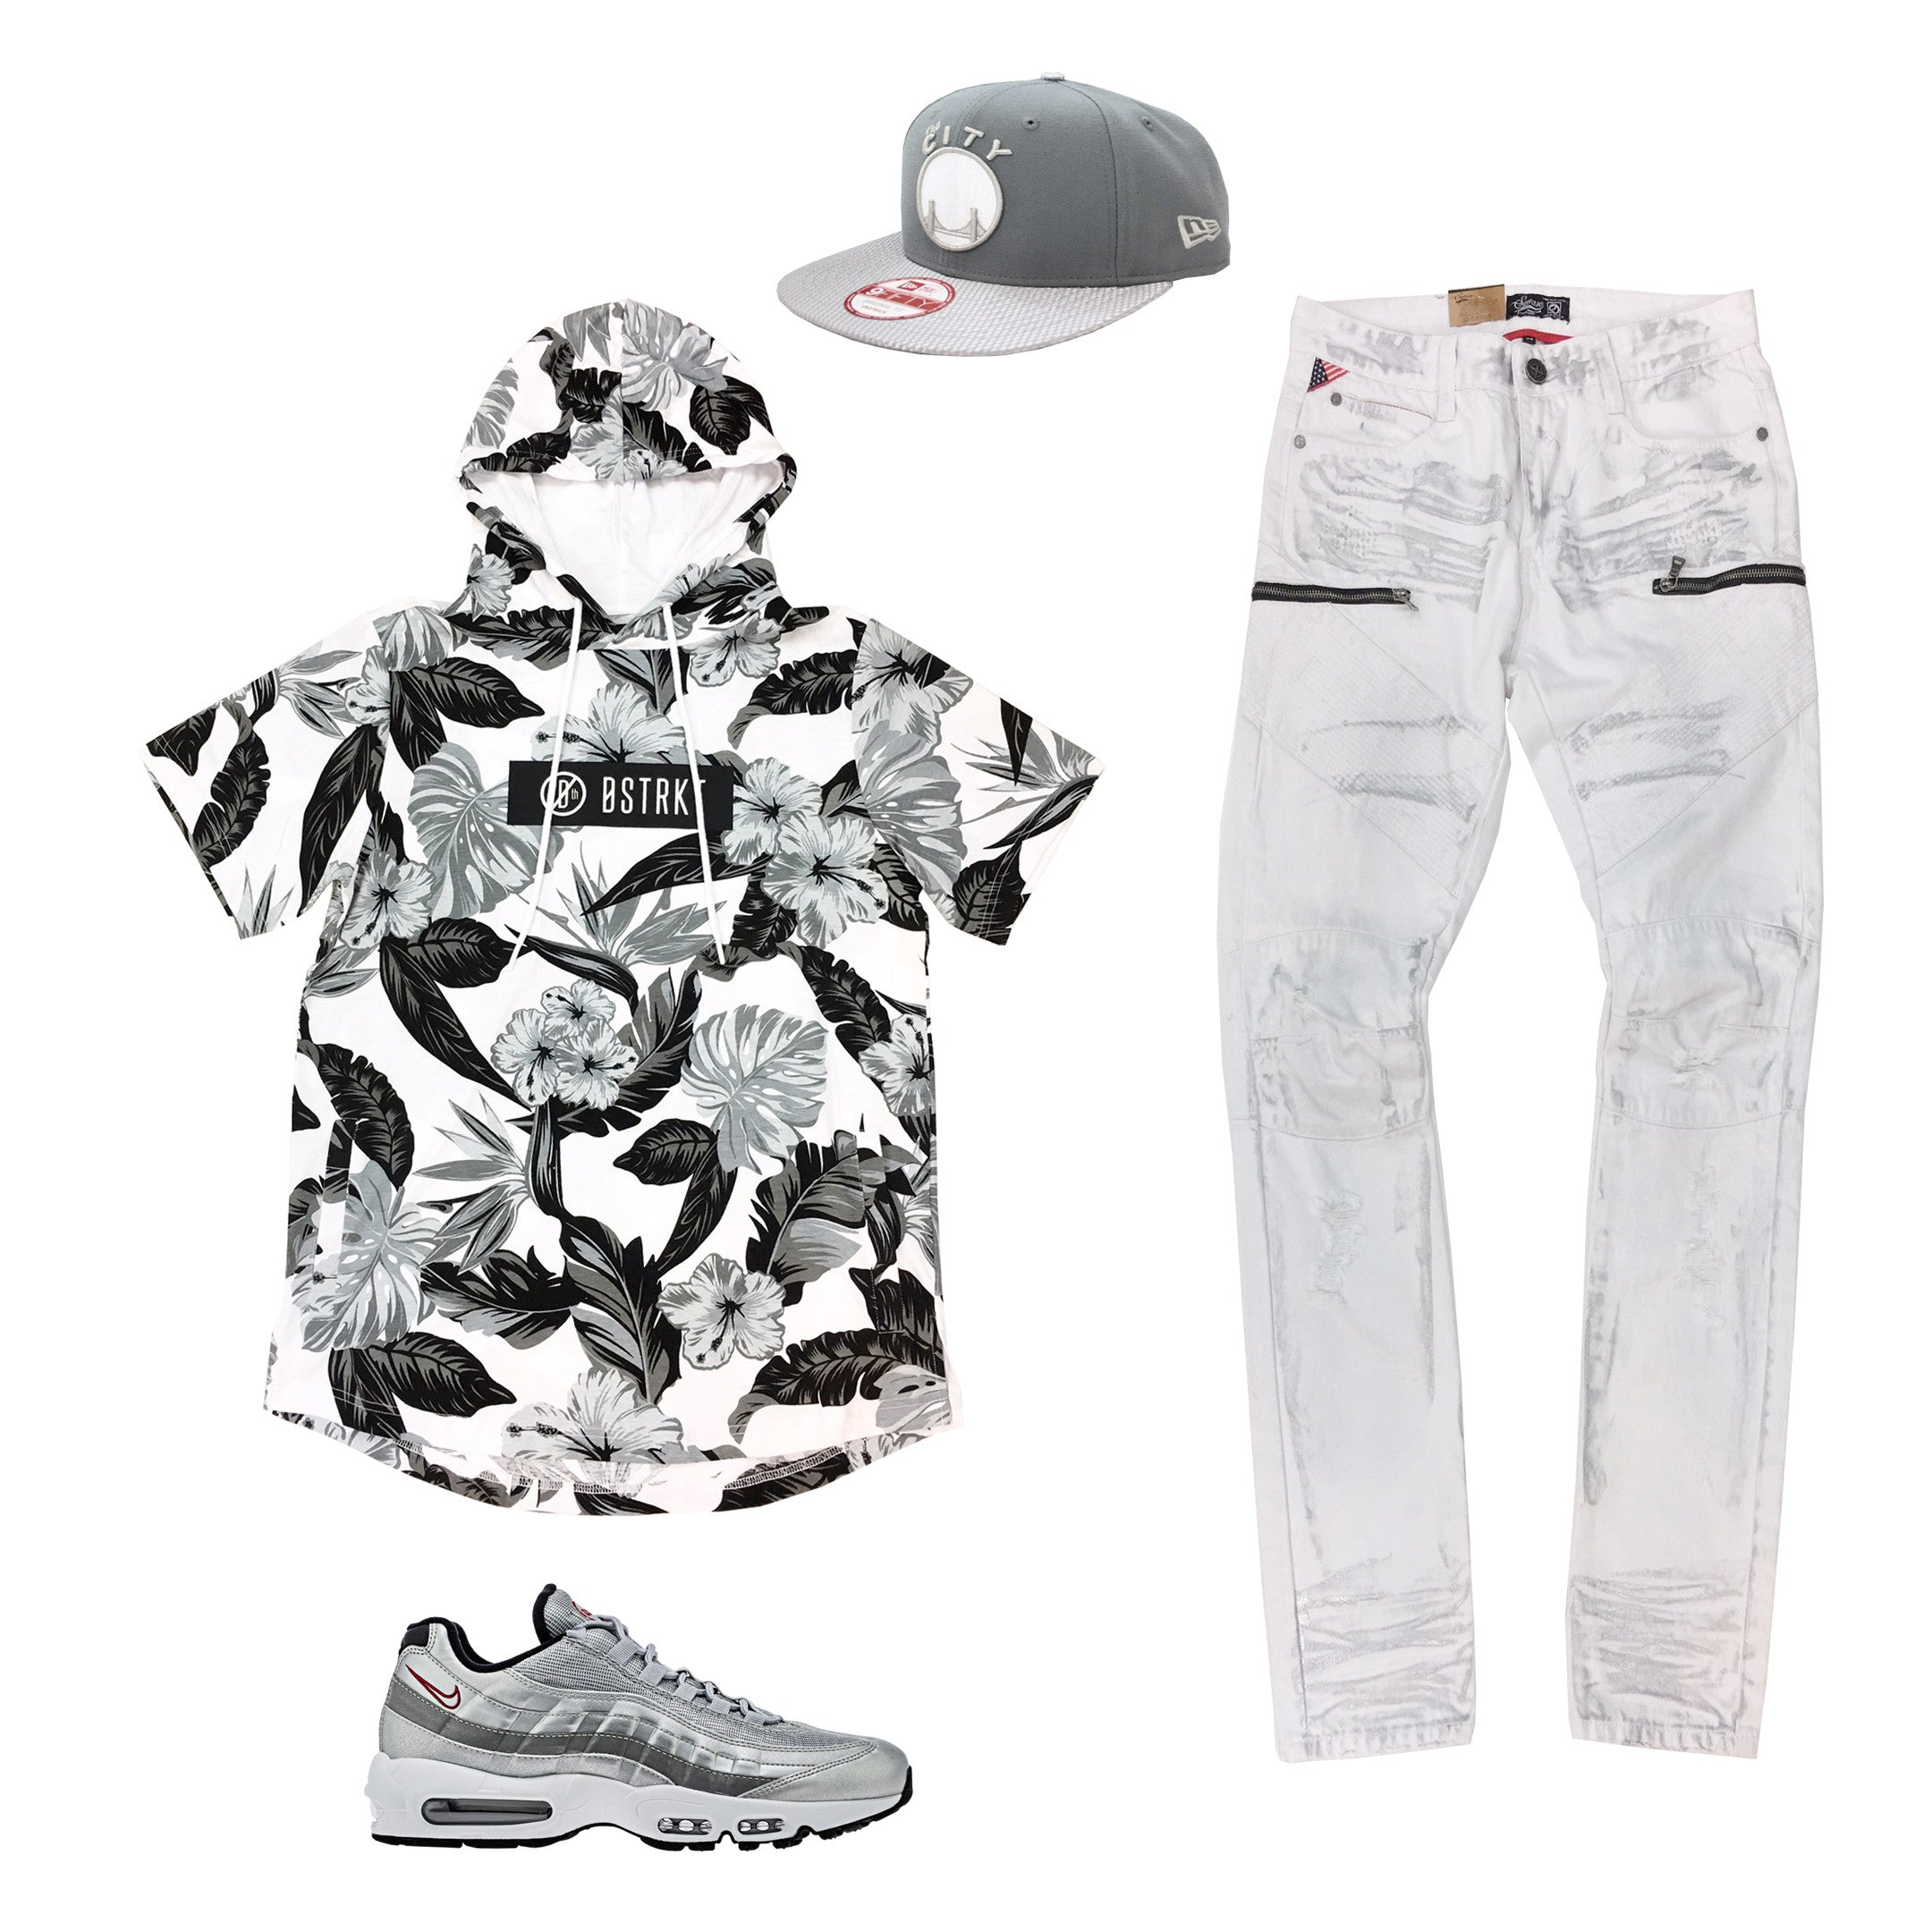 best service 6474e 5797e Nike Air Max 95 Silver Bullet Outfit